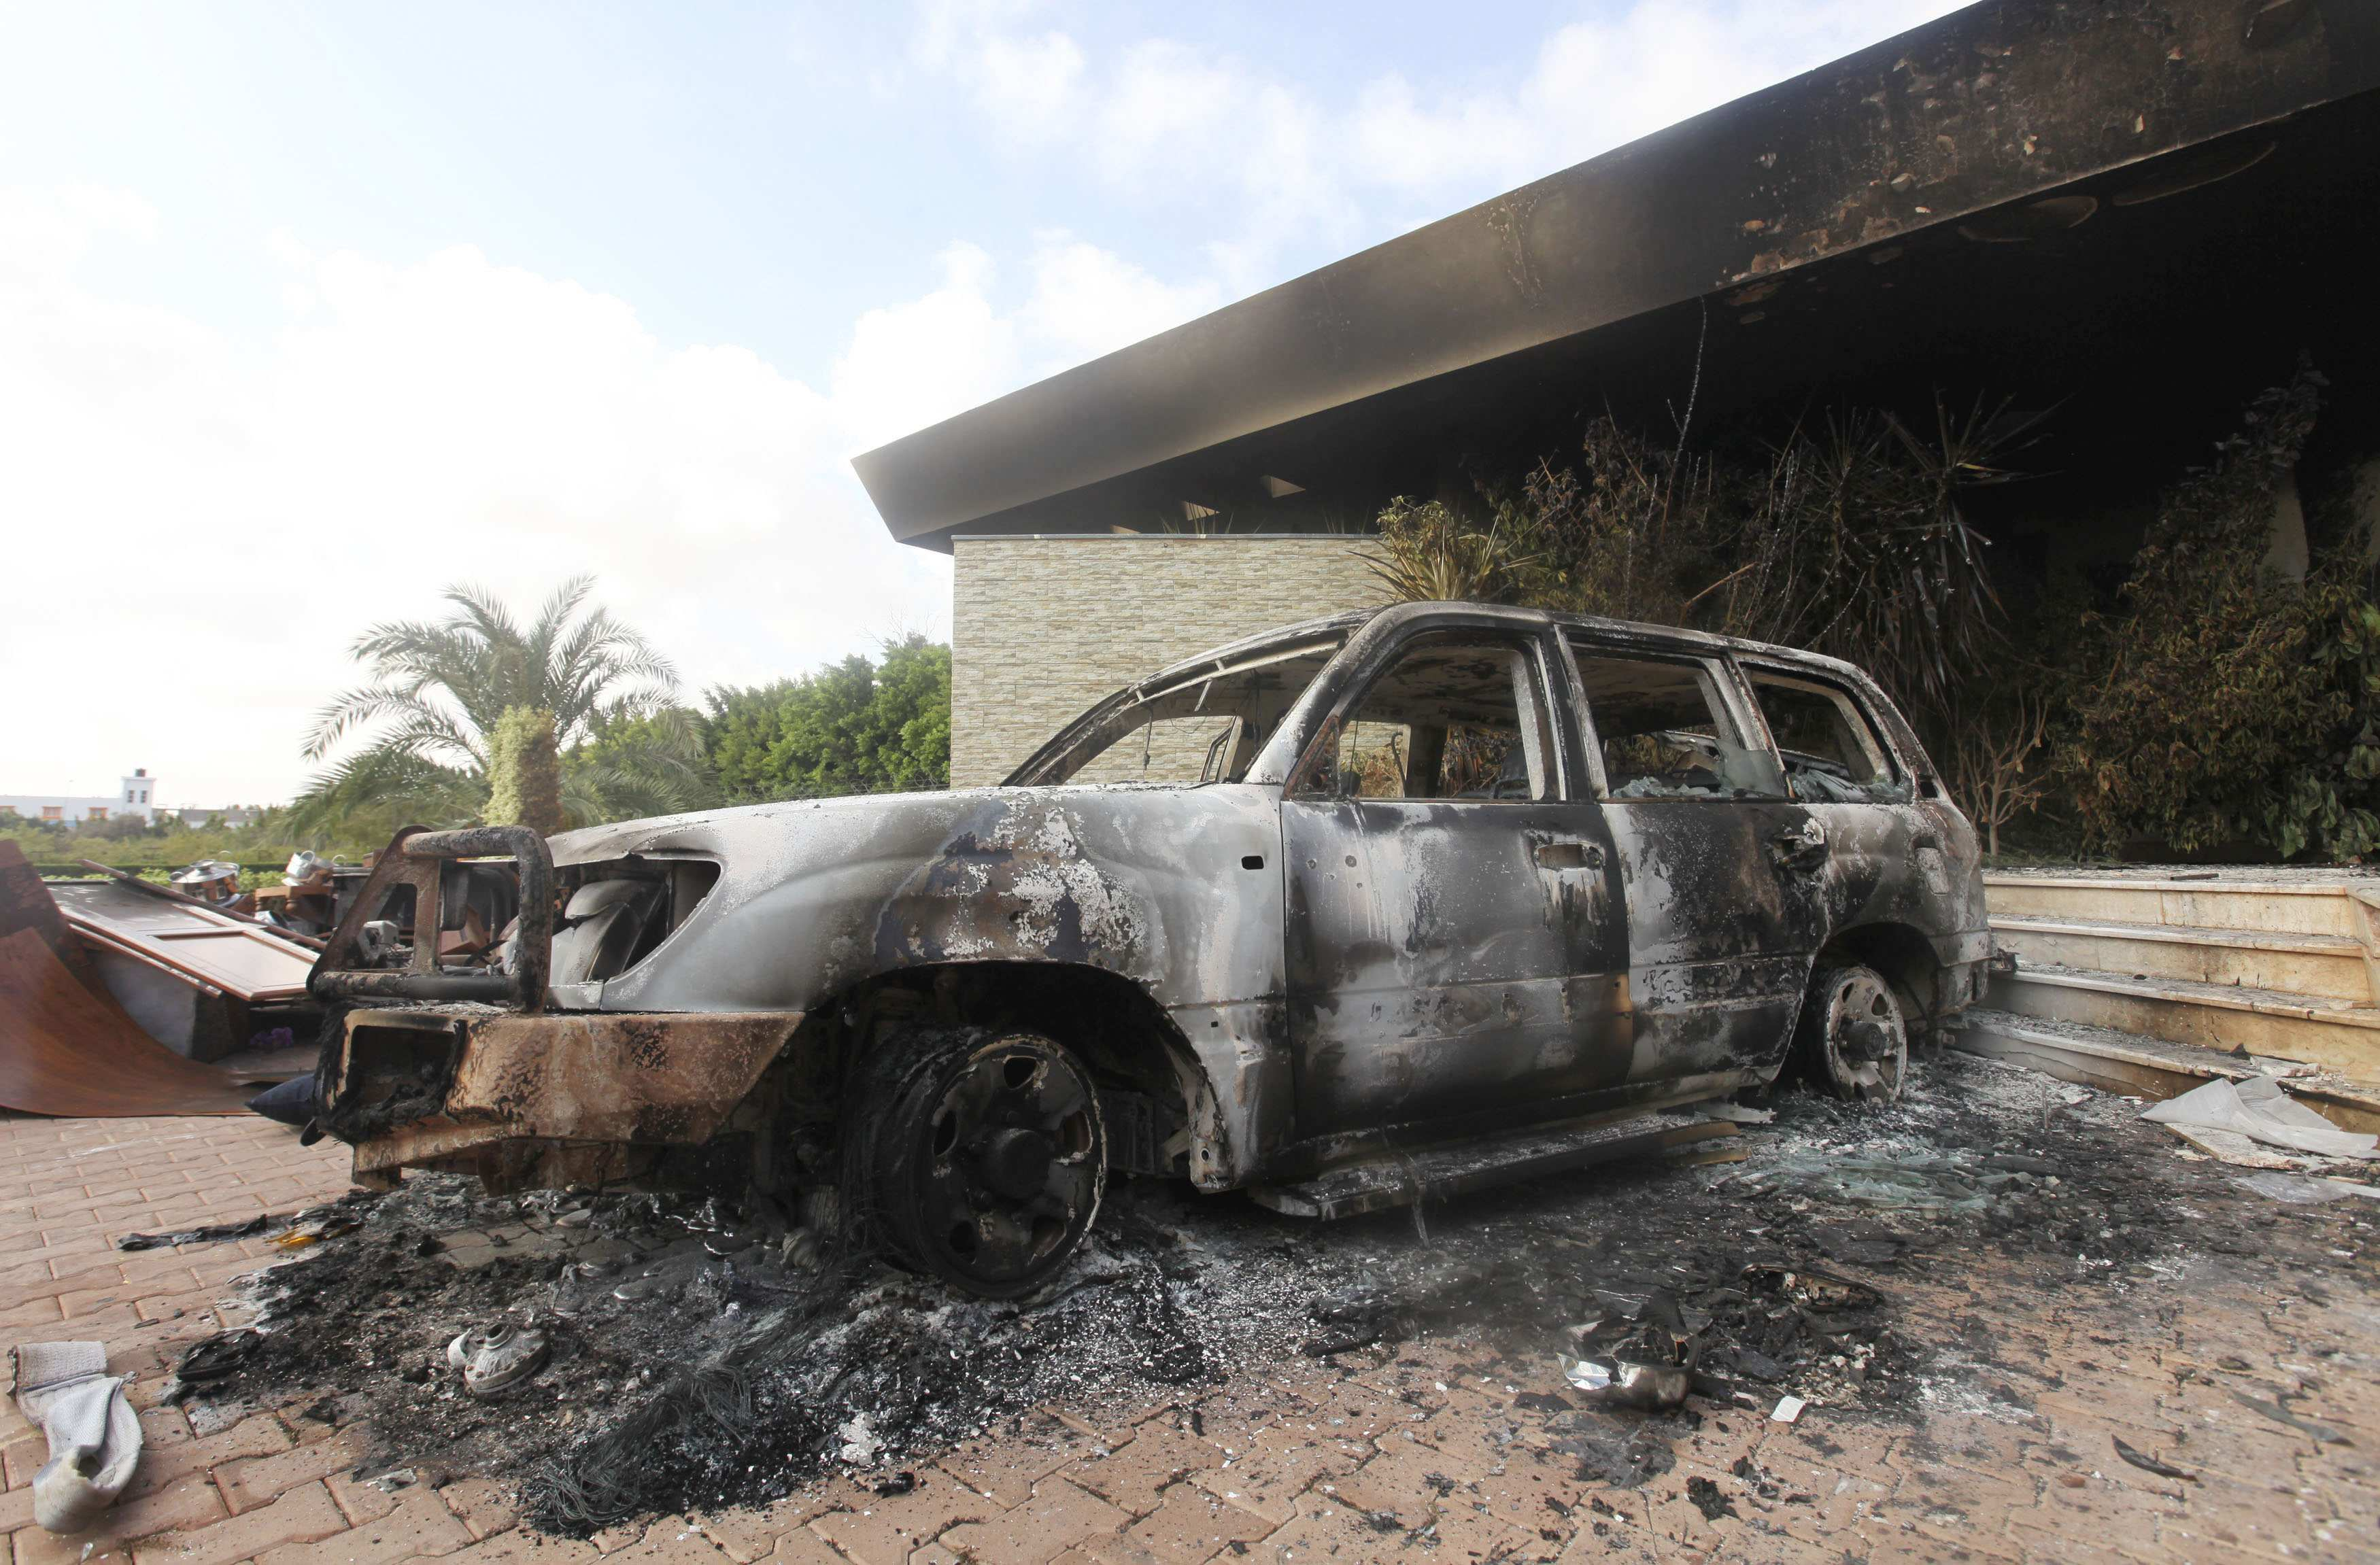 A burnt car is seen parked outside the U.S. Consulate in Benghazi  last week. (Esam Al-Fetori/Reuters)